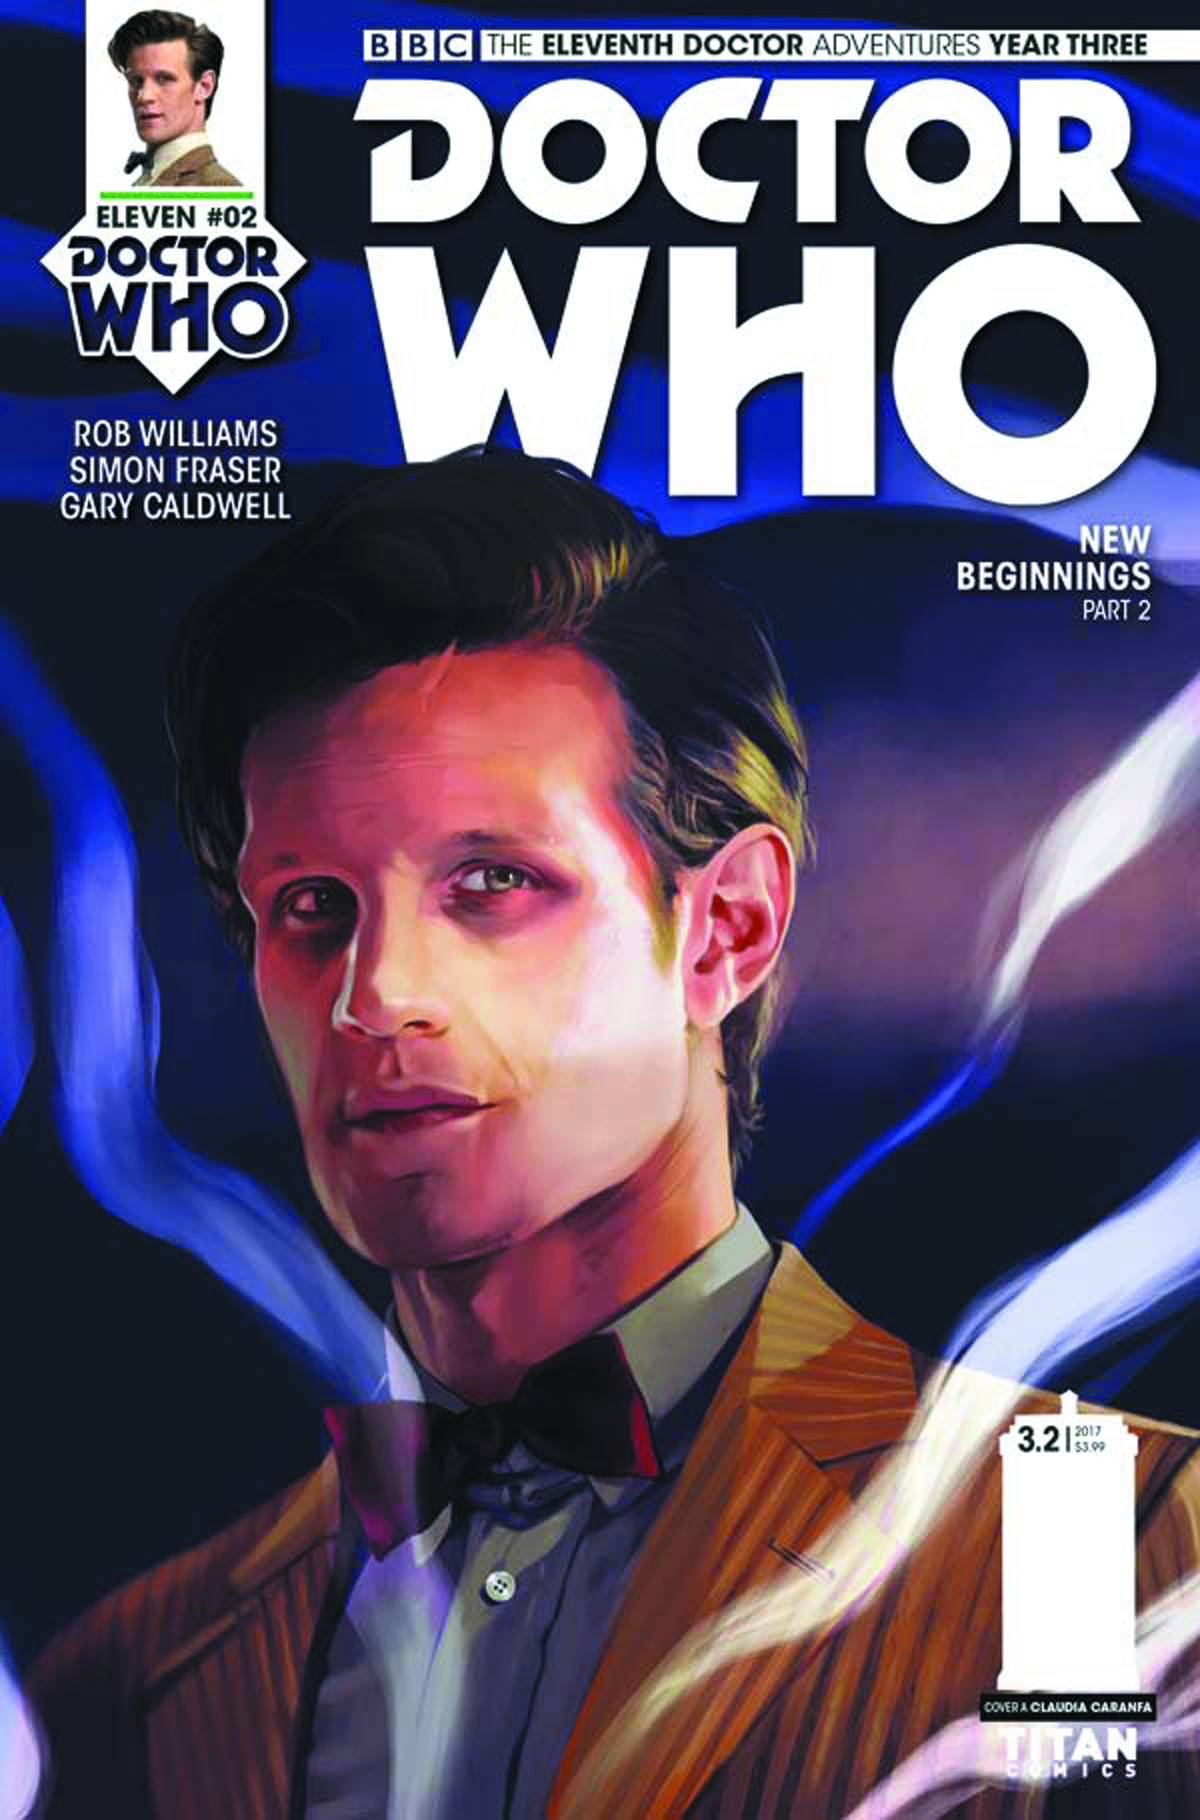 DOCTOR WHO 11TH YEAR THREE #2 CVR A CARANFA